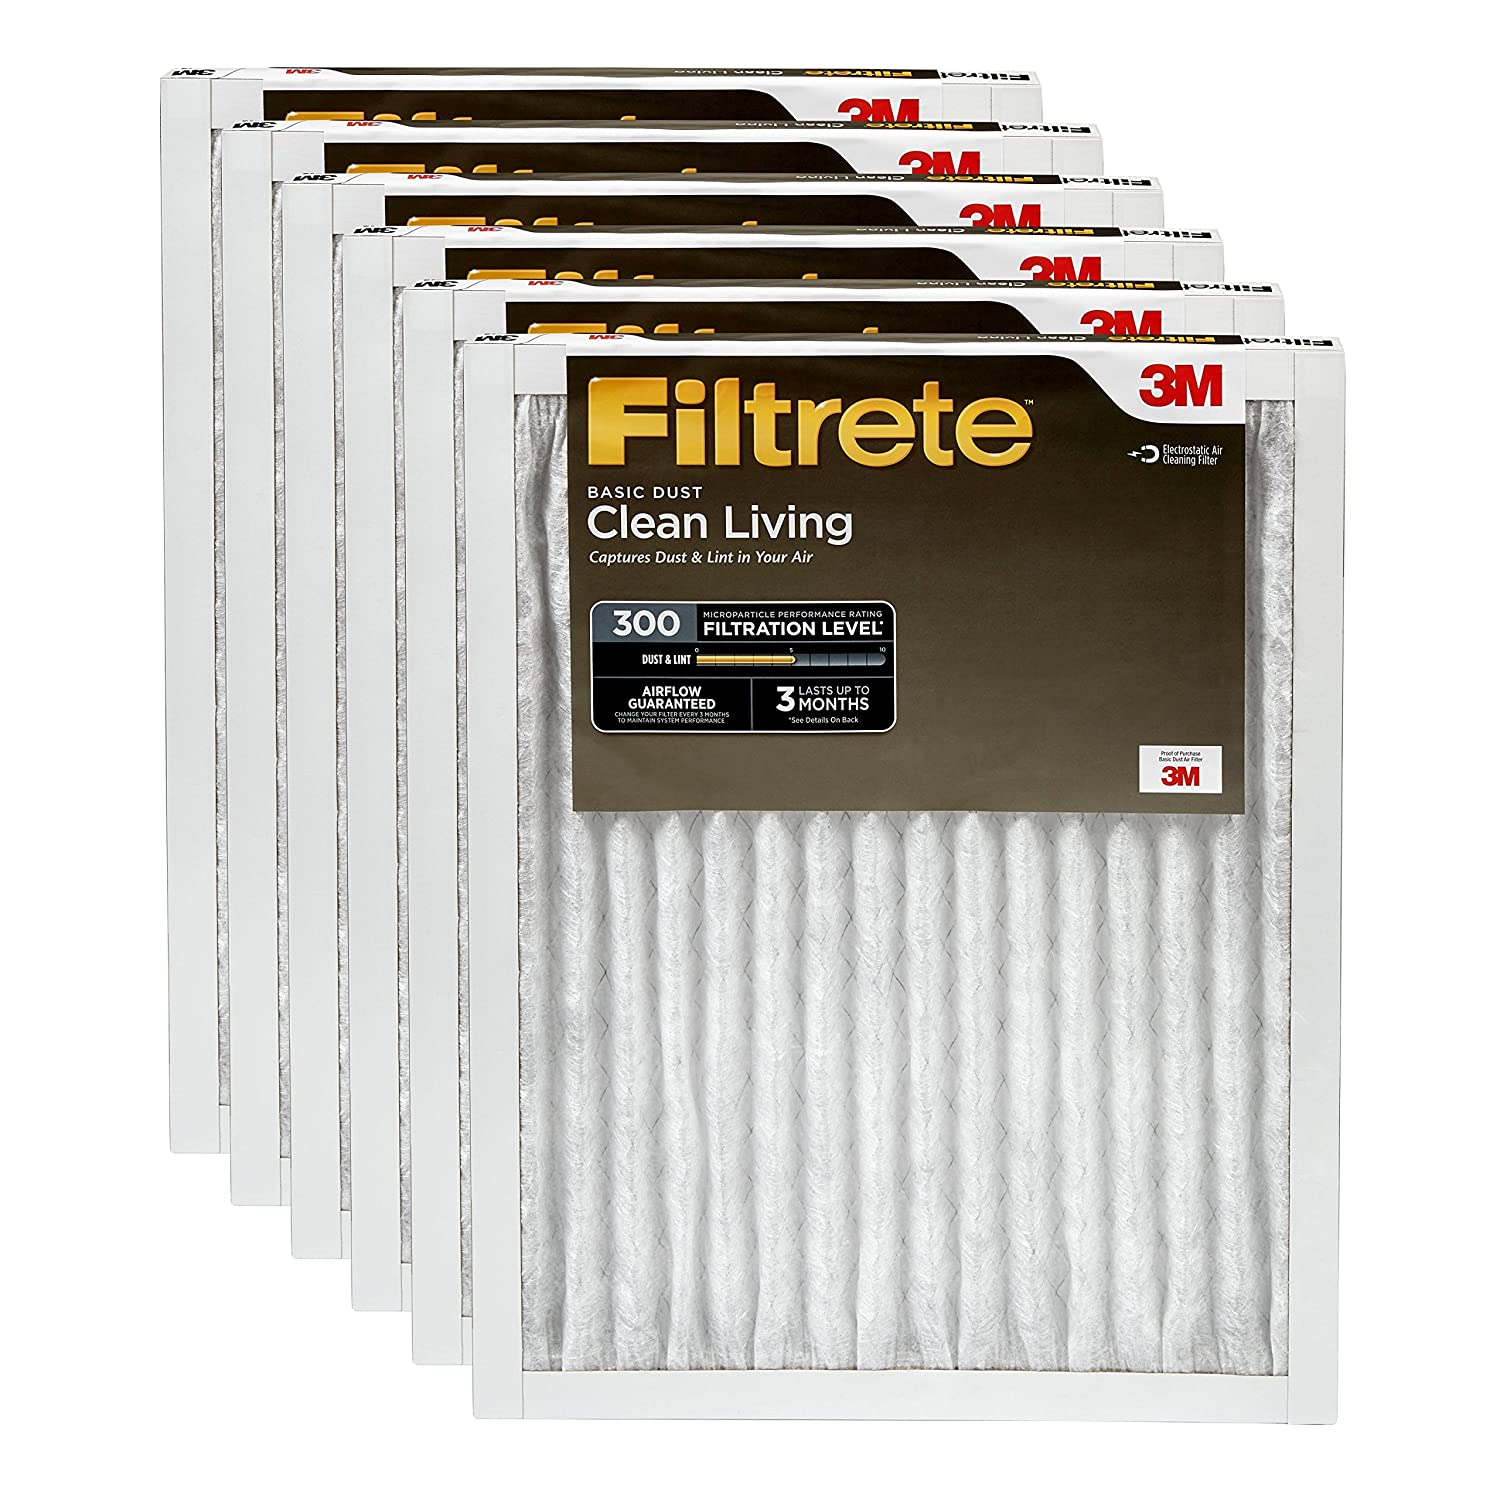 Filtrete 20x25x1, AC Furnace Air Filter, MPR 300, Clean Living Basic Dust, 6-Pack